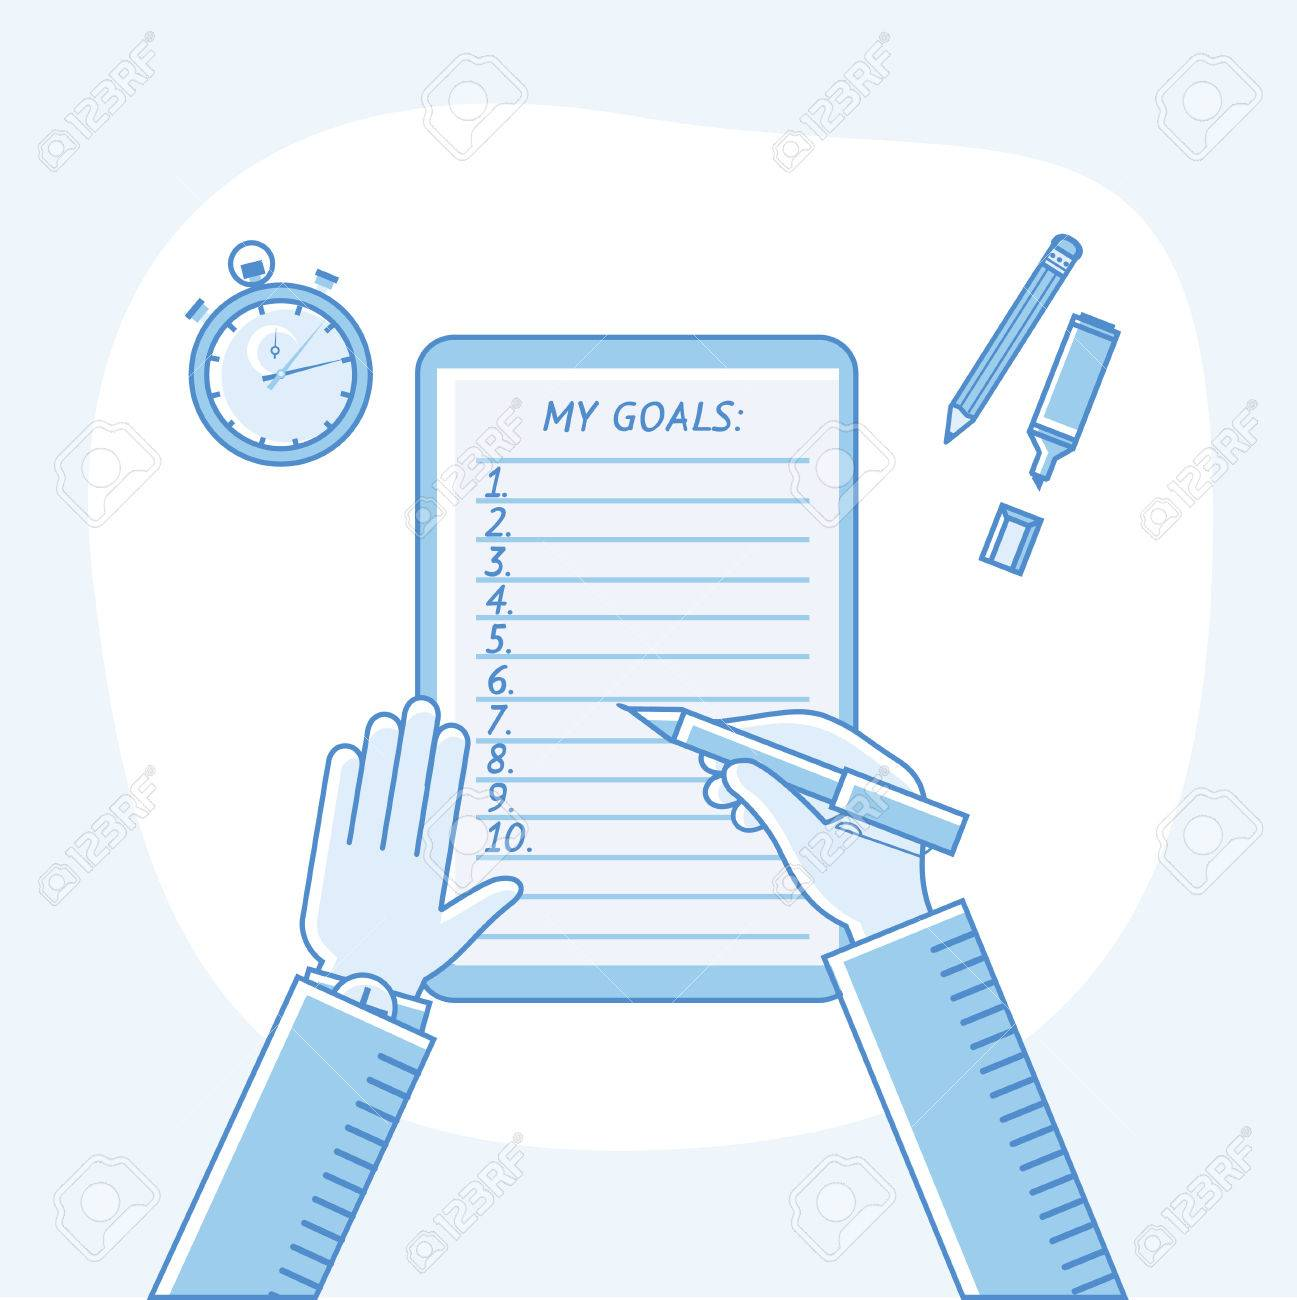 Business goals checklist. Vector flat linear icon. To do list. Top view. Idea - Business planning, my goals, management and company strategy concept. - 41739925